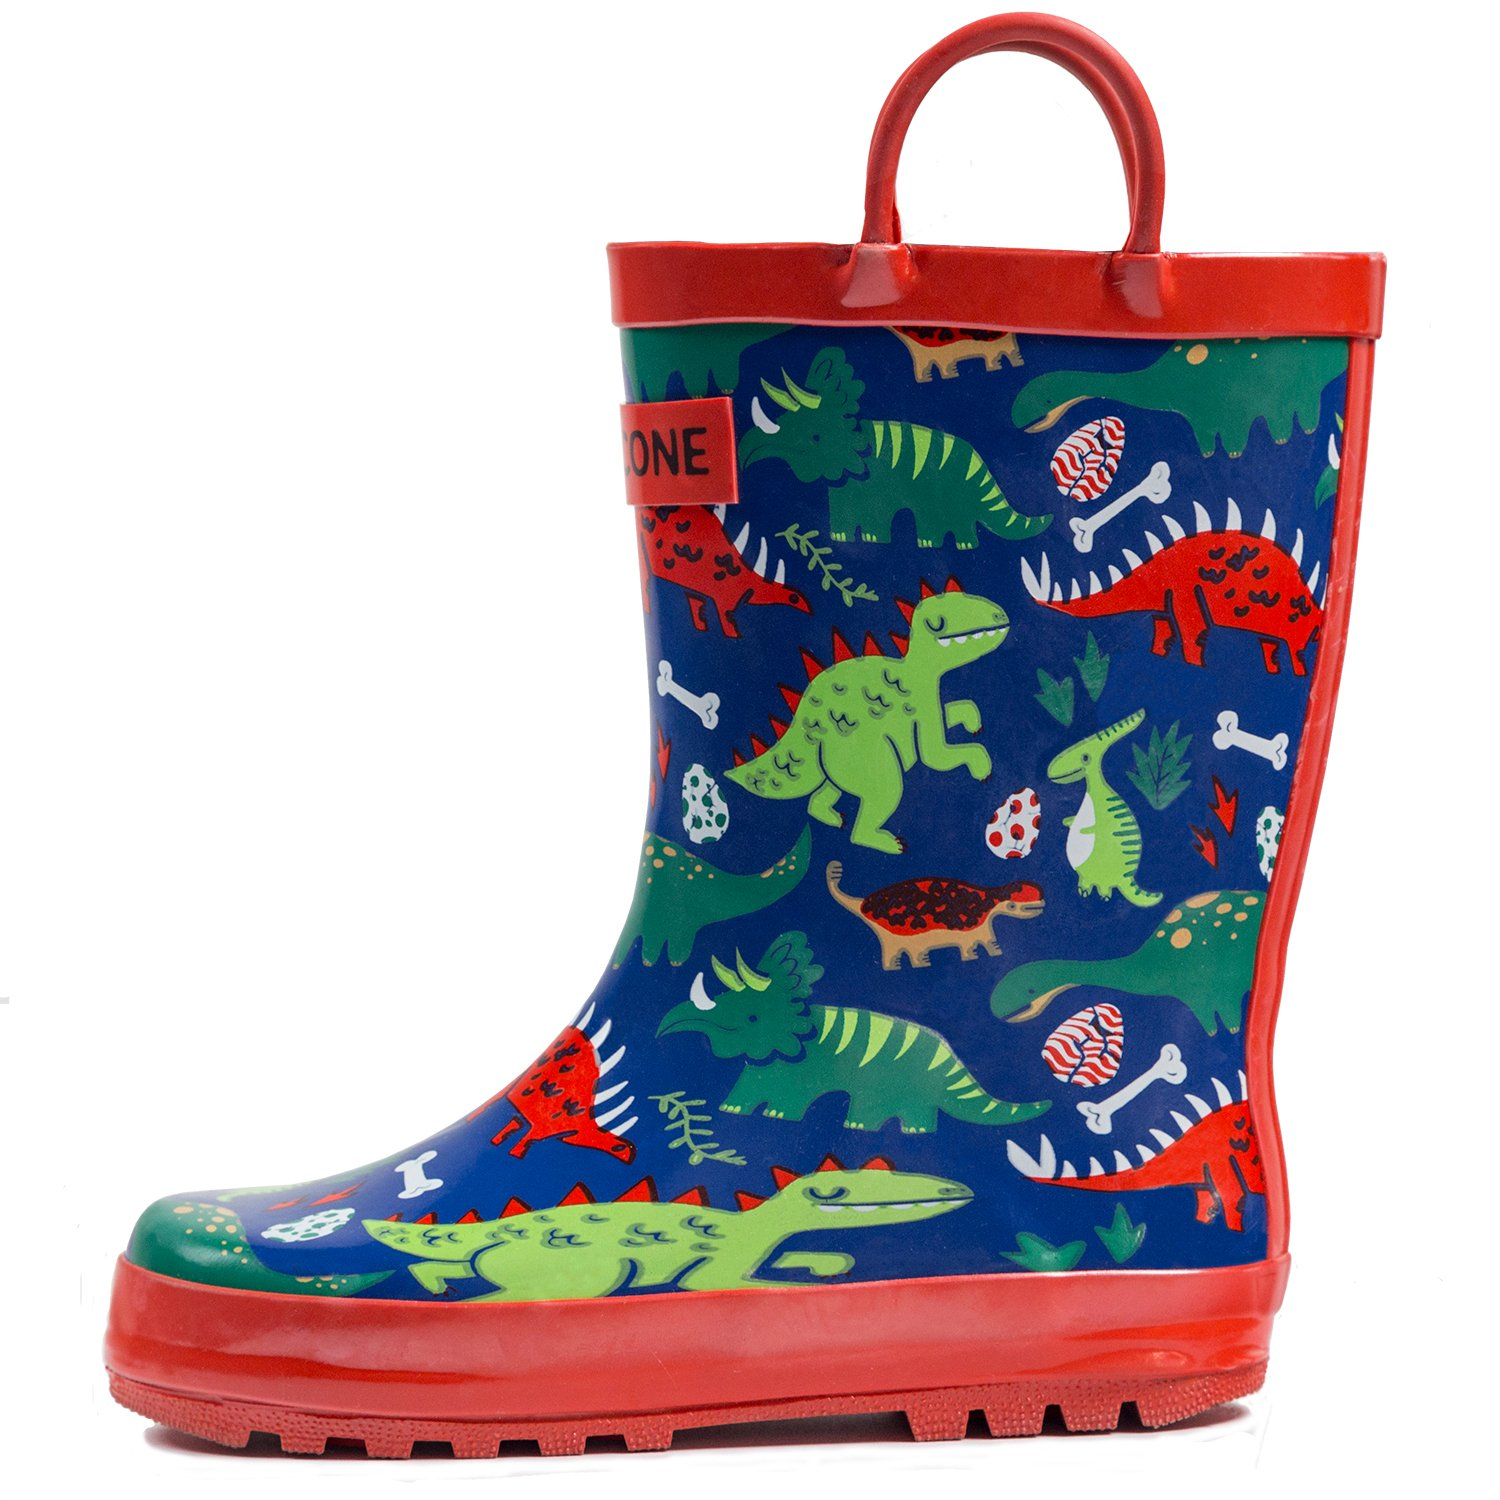 LONECONE Children's Waterproof Rubber Rain Boots in Fun Patterns with Easy-On Handles Simple for Kids, Puddle-a-Saurus Dinosaur, Toddler 8